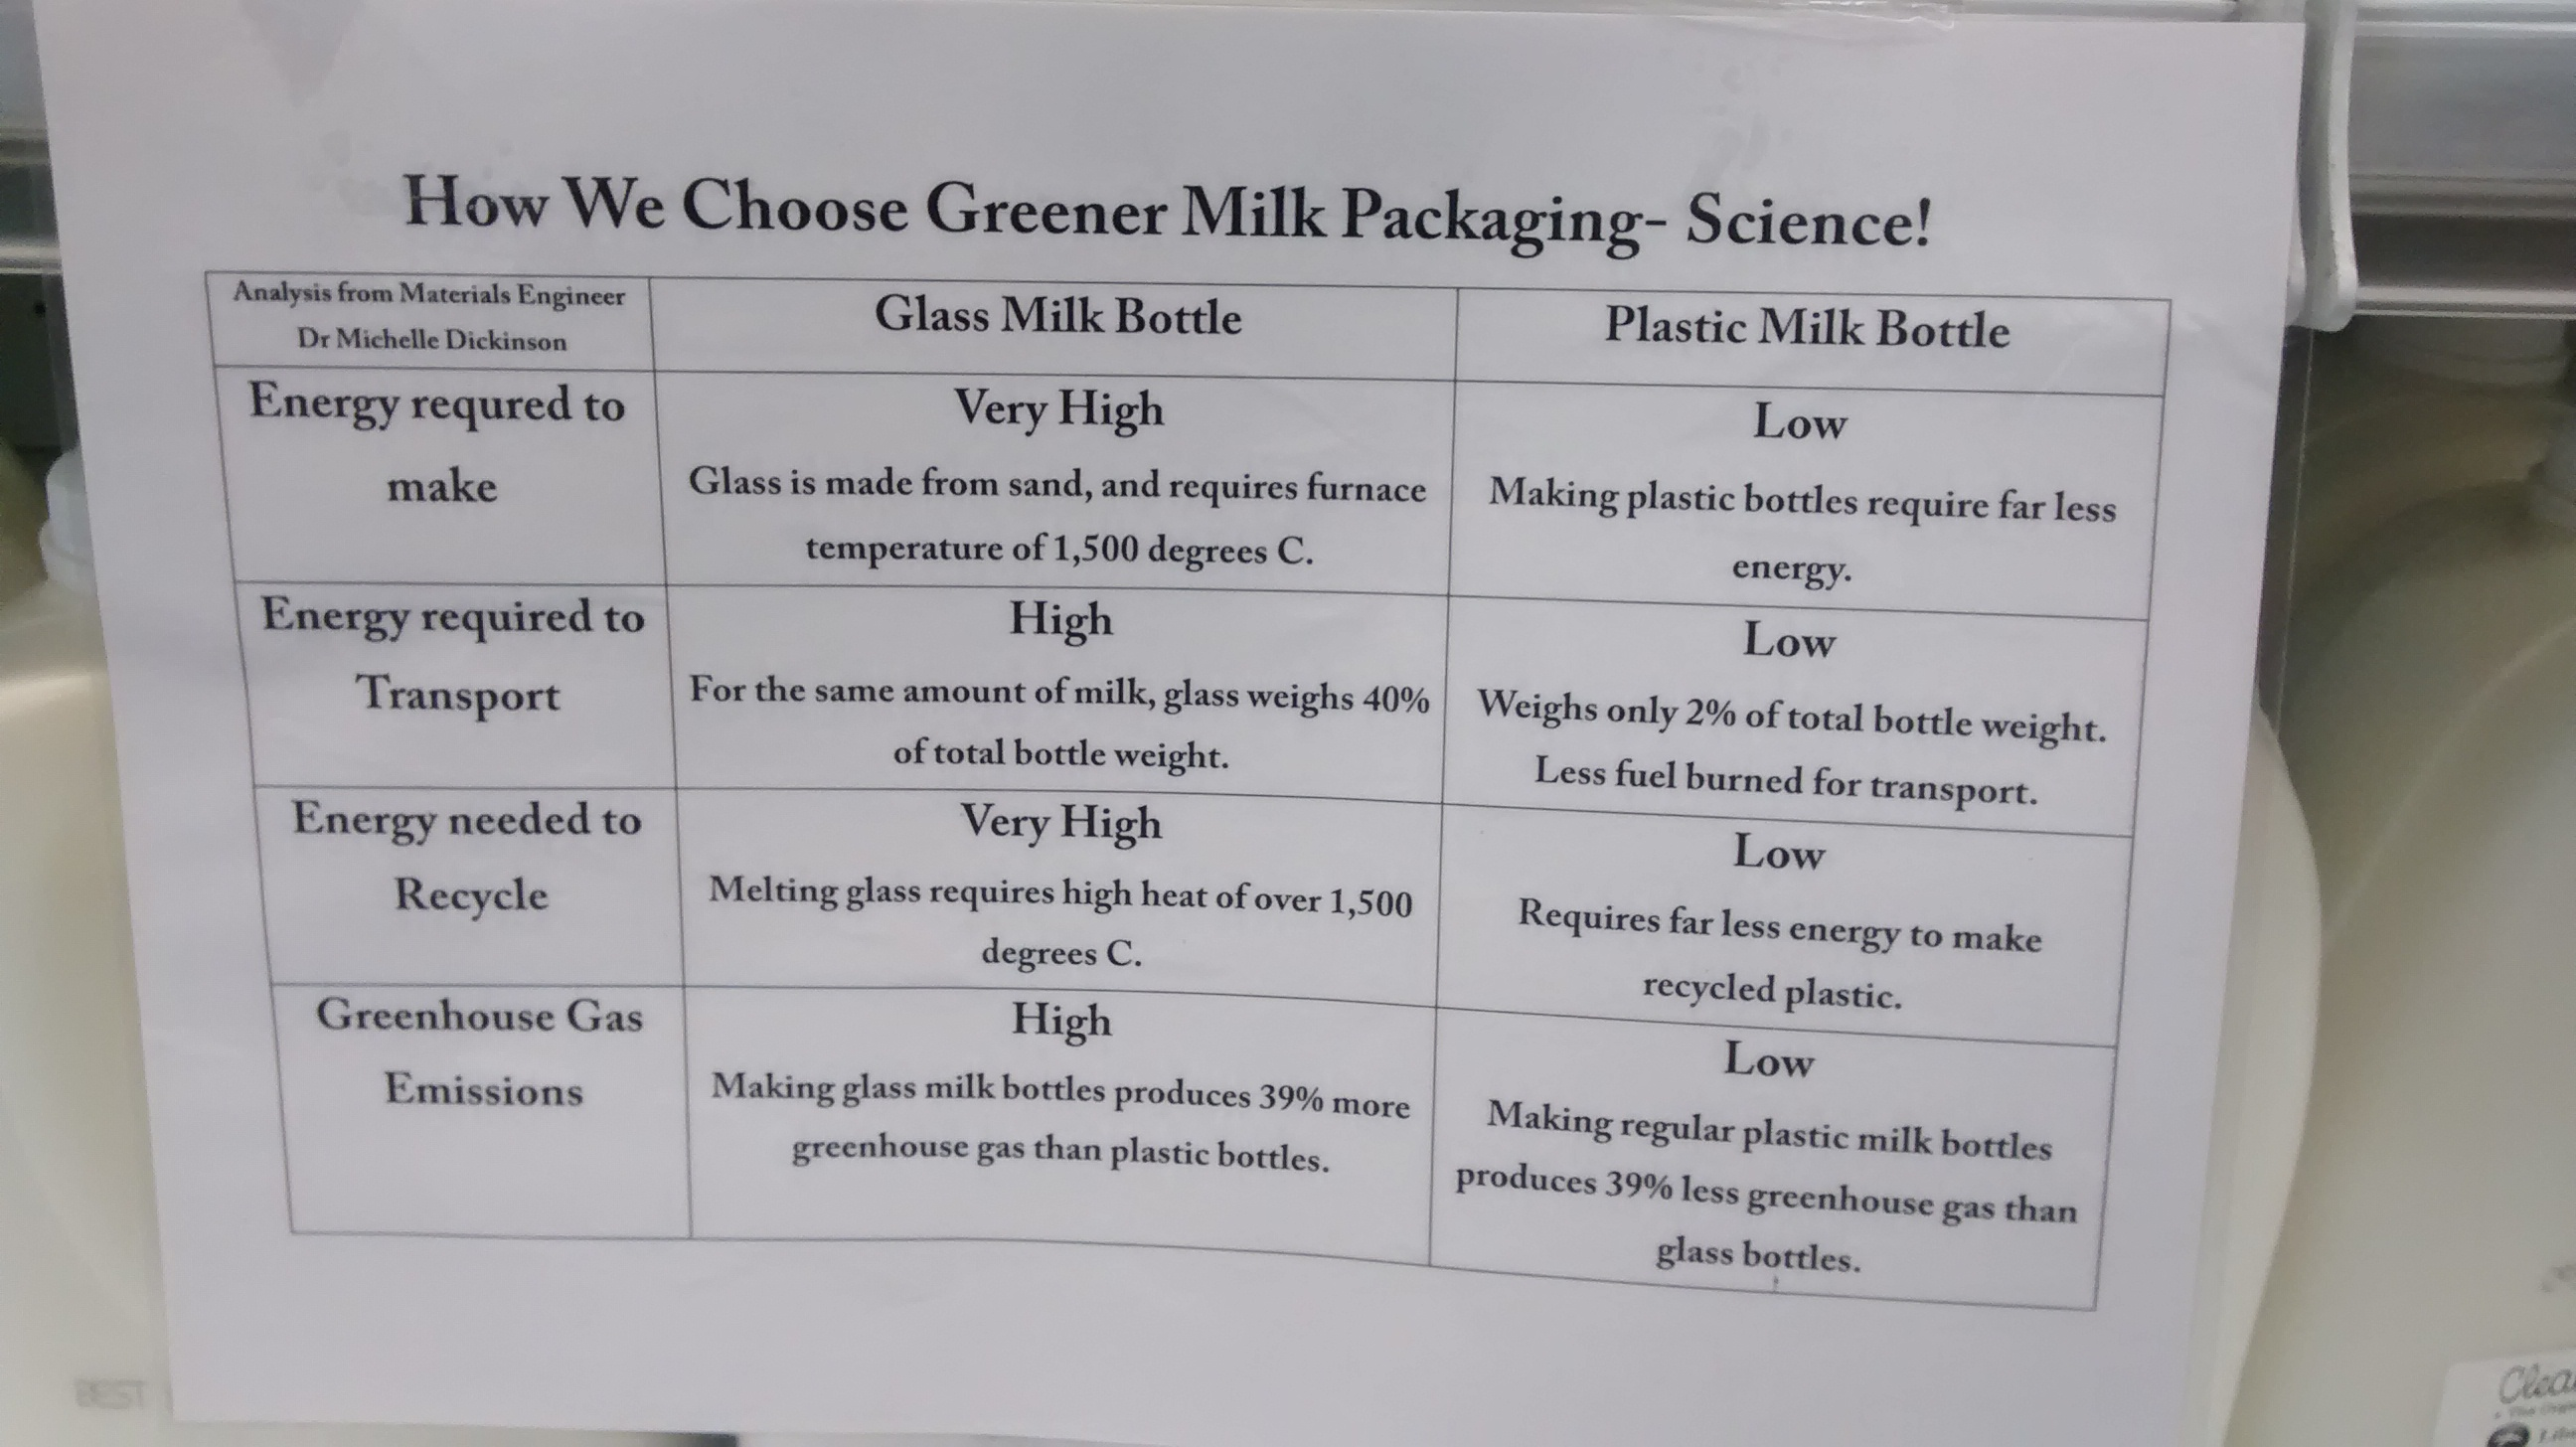 Greener than What?: the shortfalls of comparing milk packaging options within the disposability paradigm